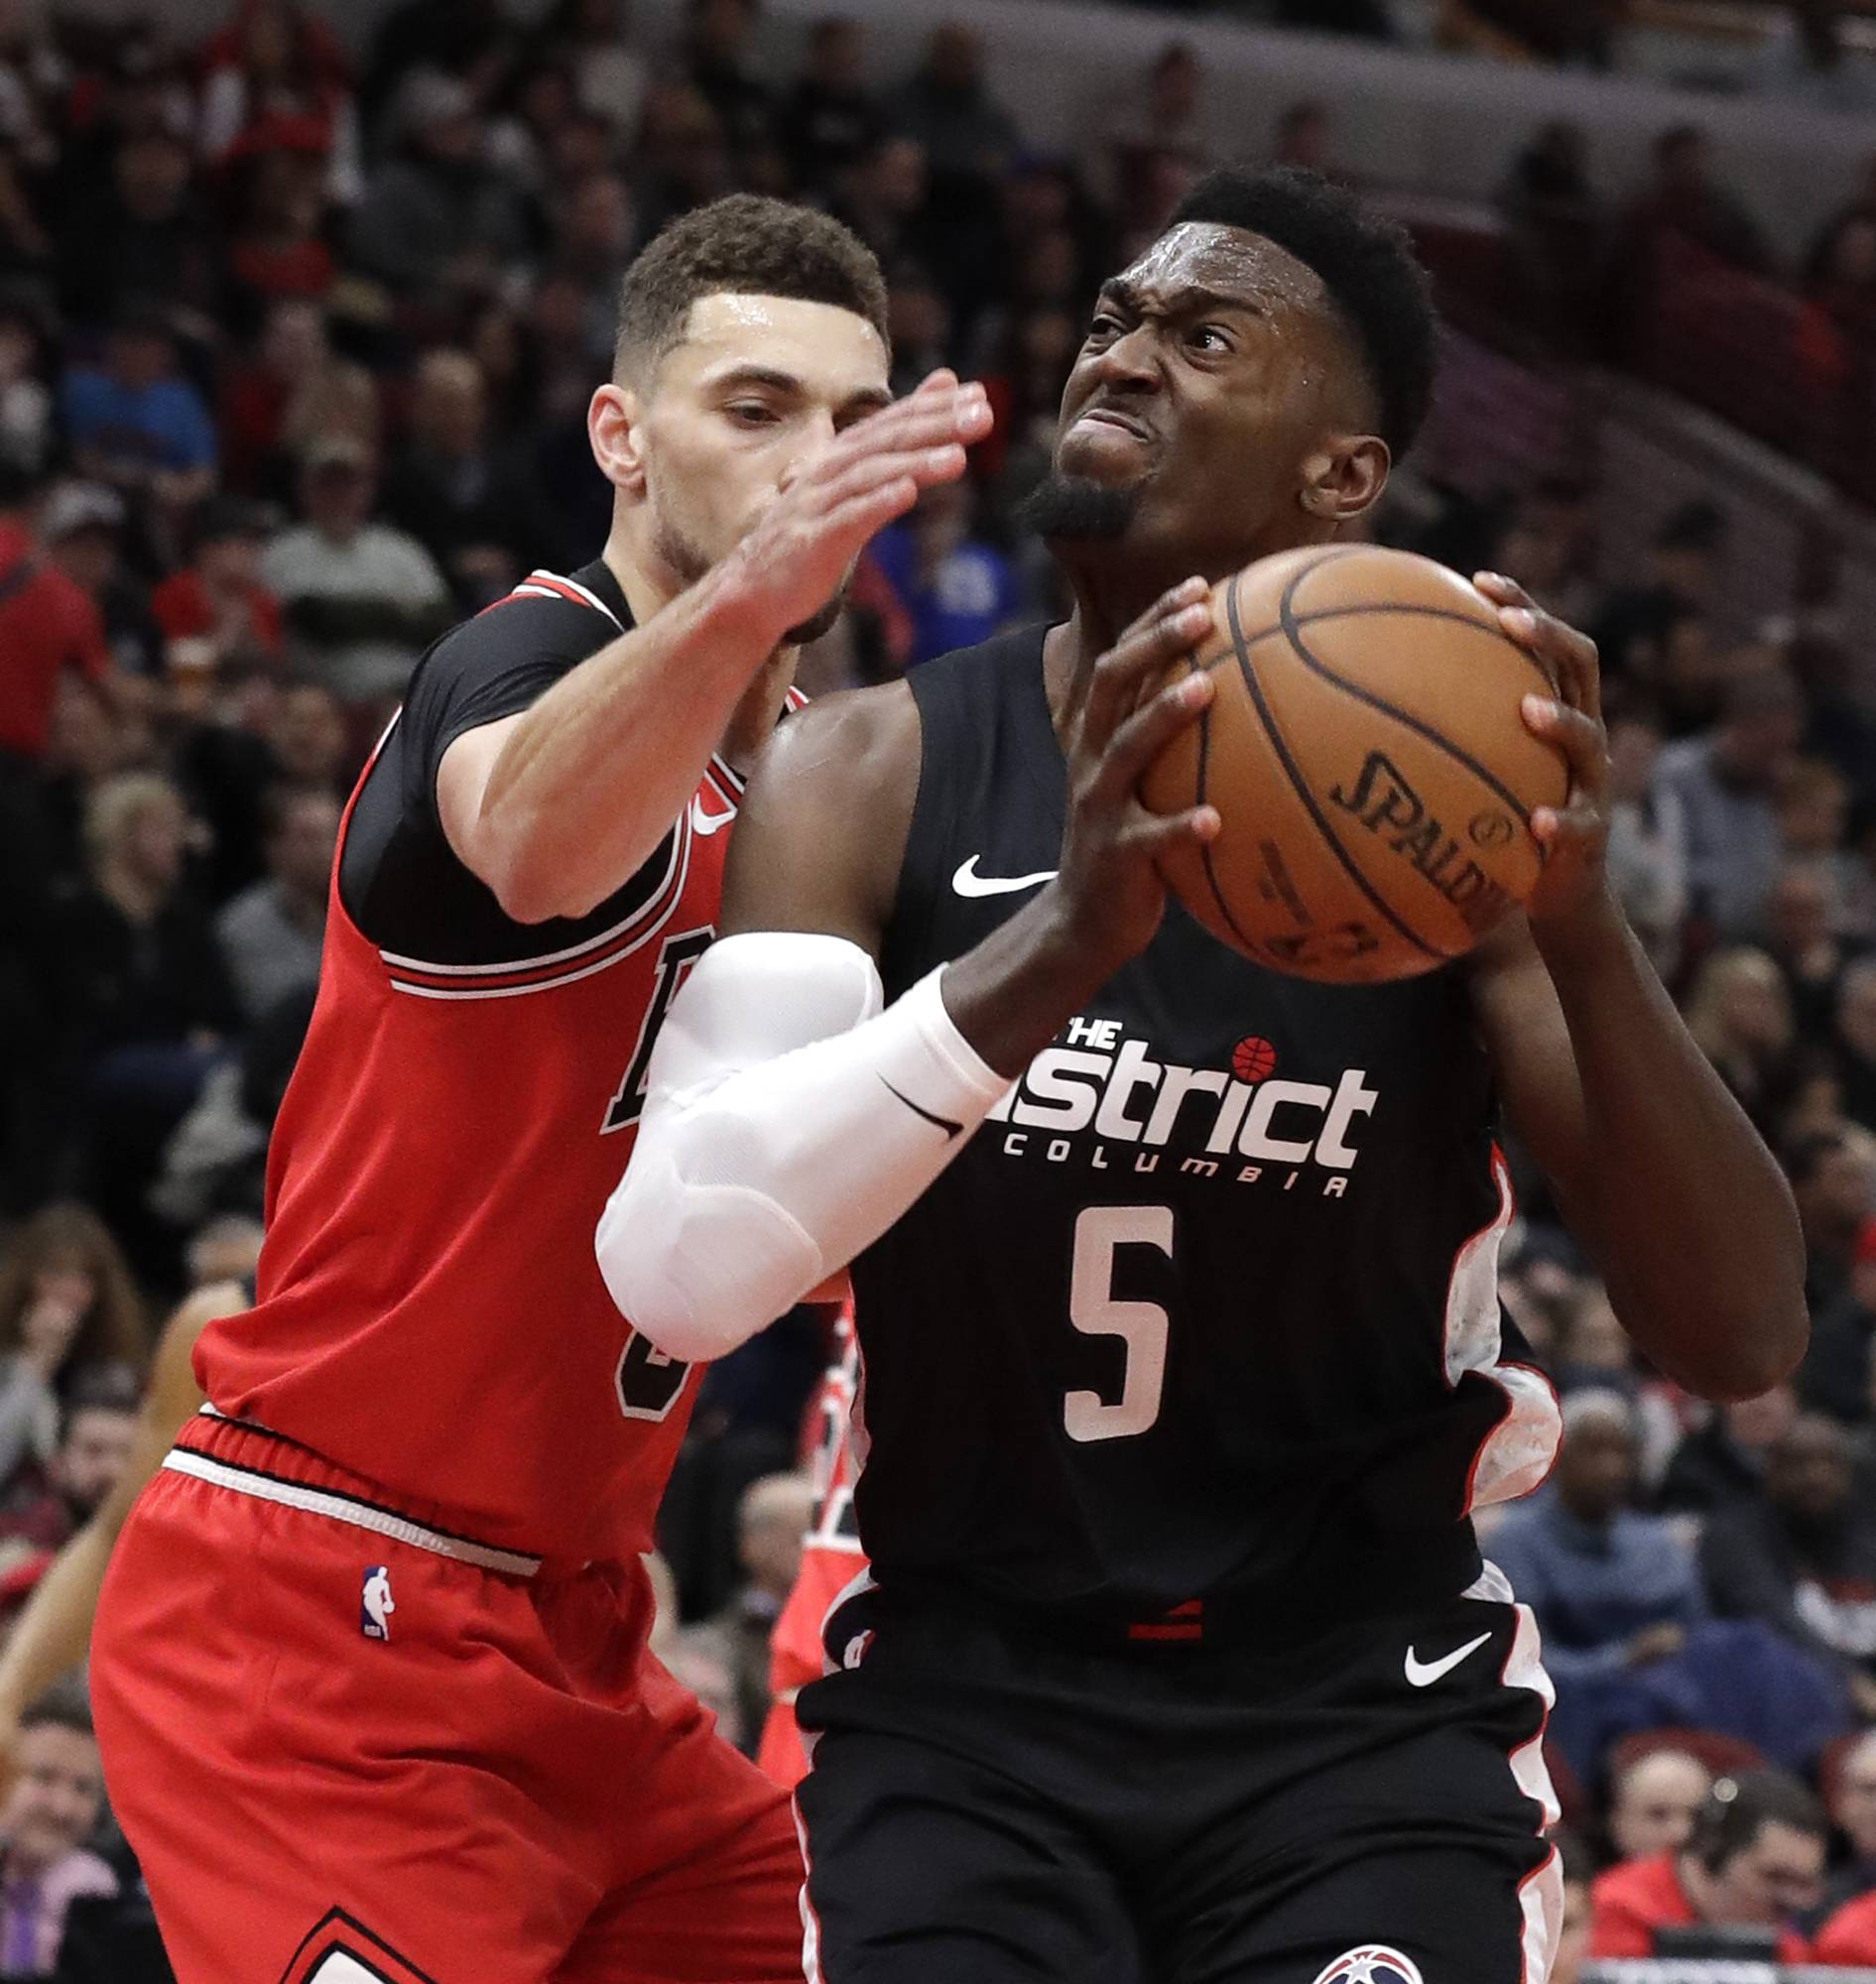 Bulls' home losing streak hit 10 as Parker puts on a dunk show